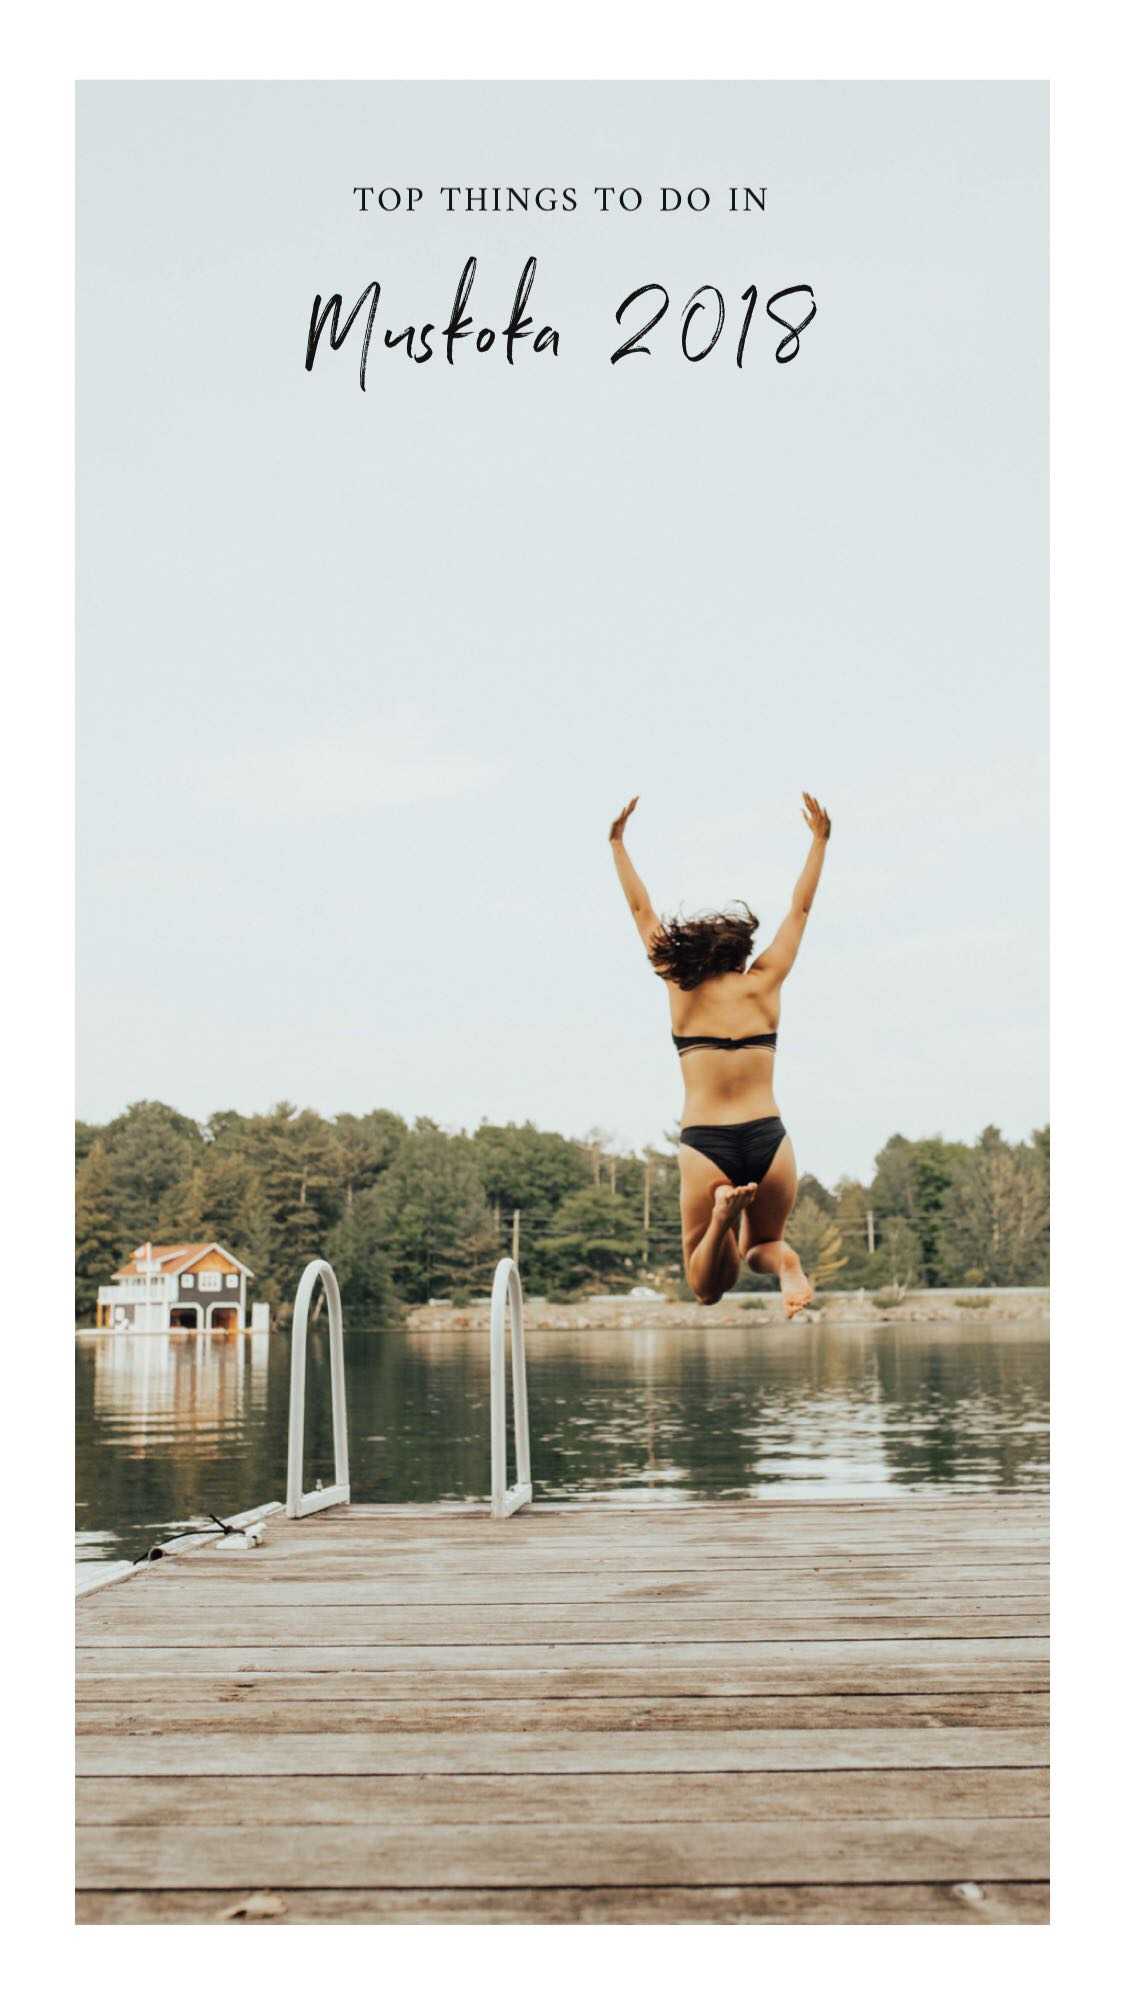 muskoka, ontario - sunset boat rides, cozying up by the fire + cottage country livin' by the water.